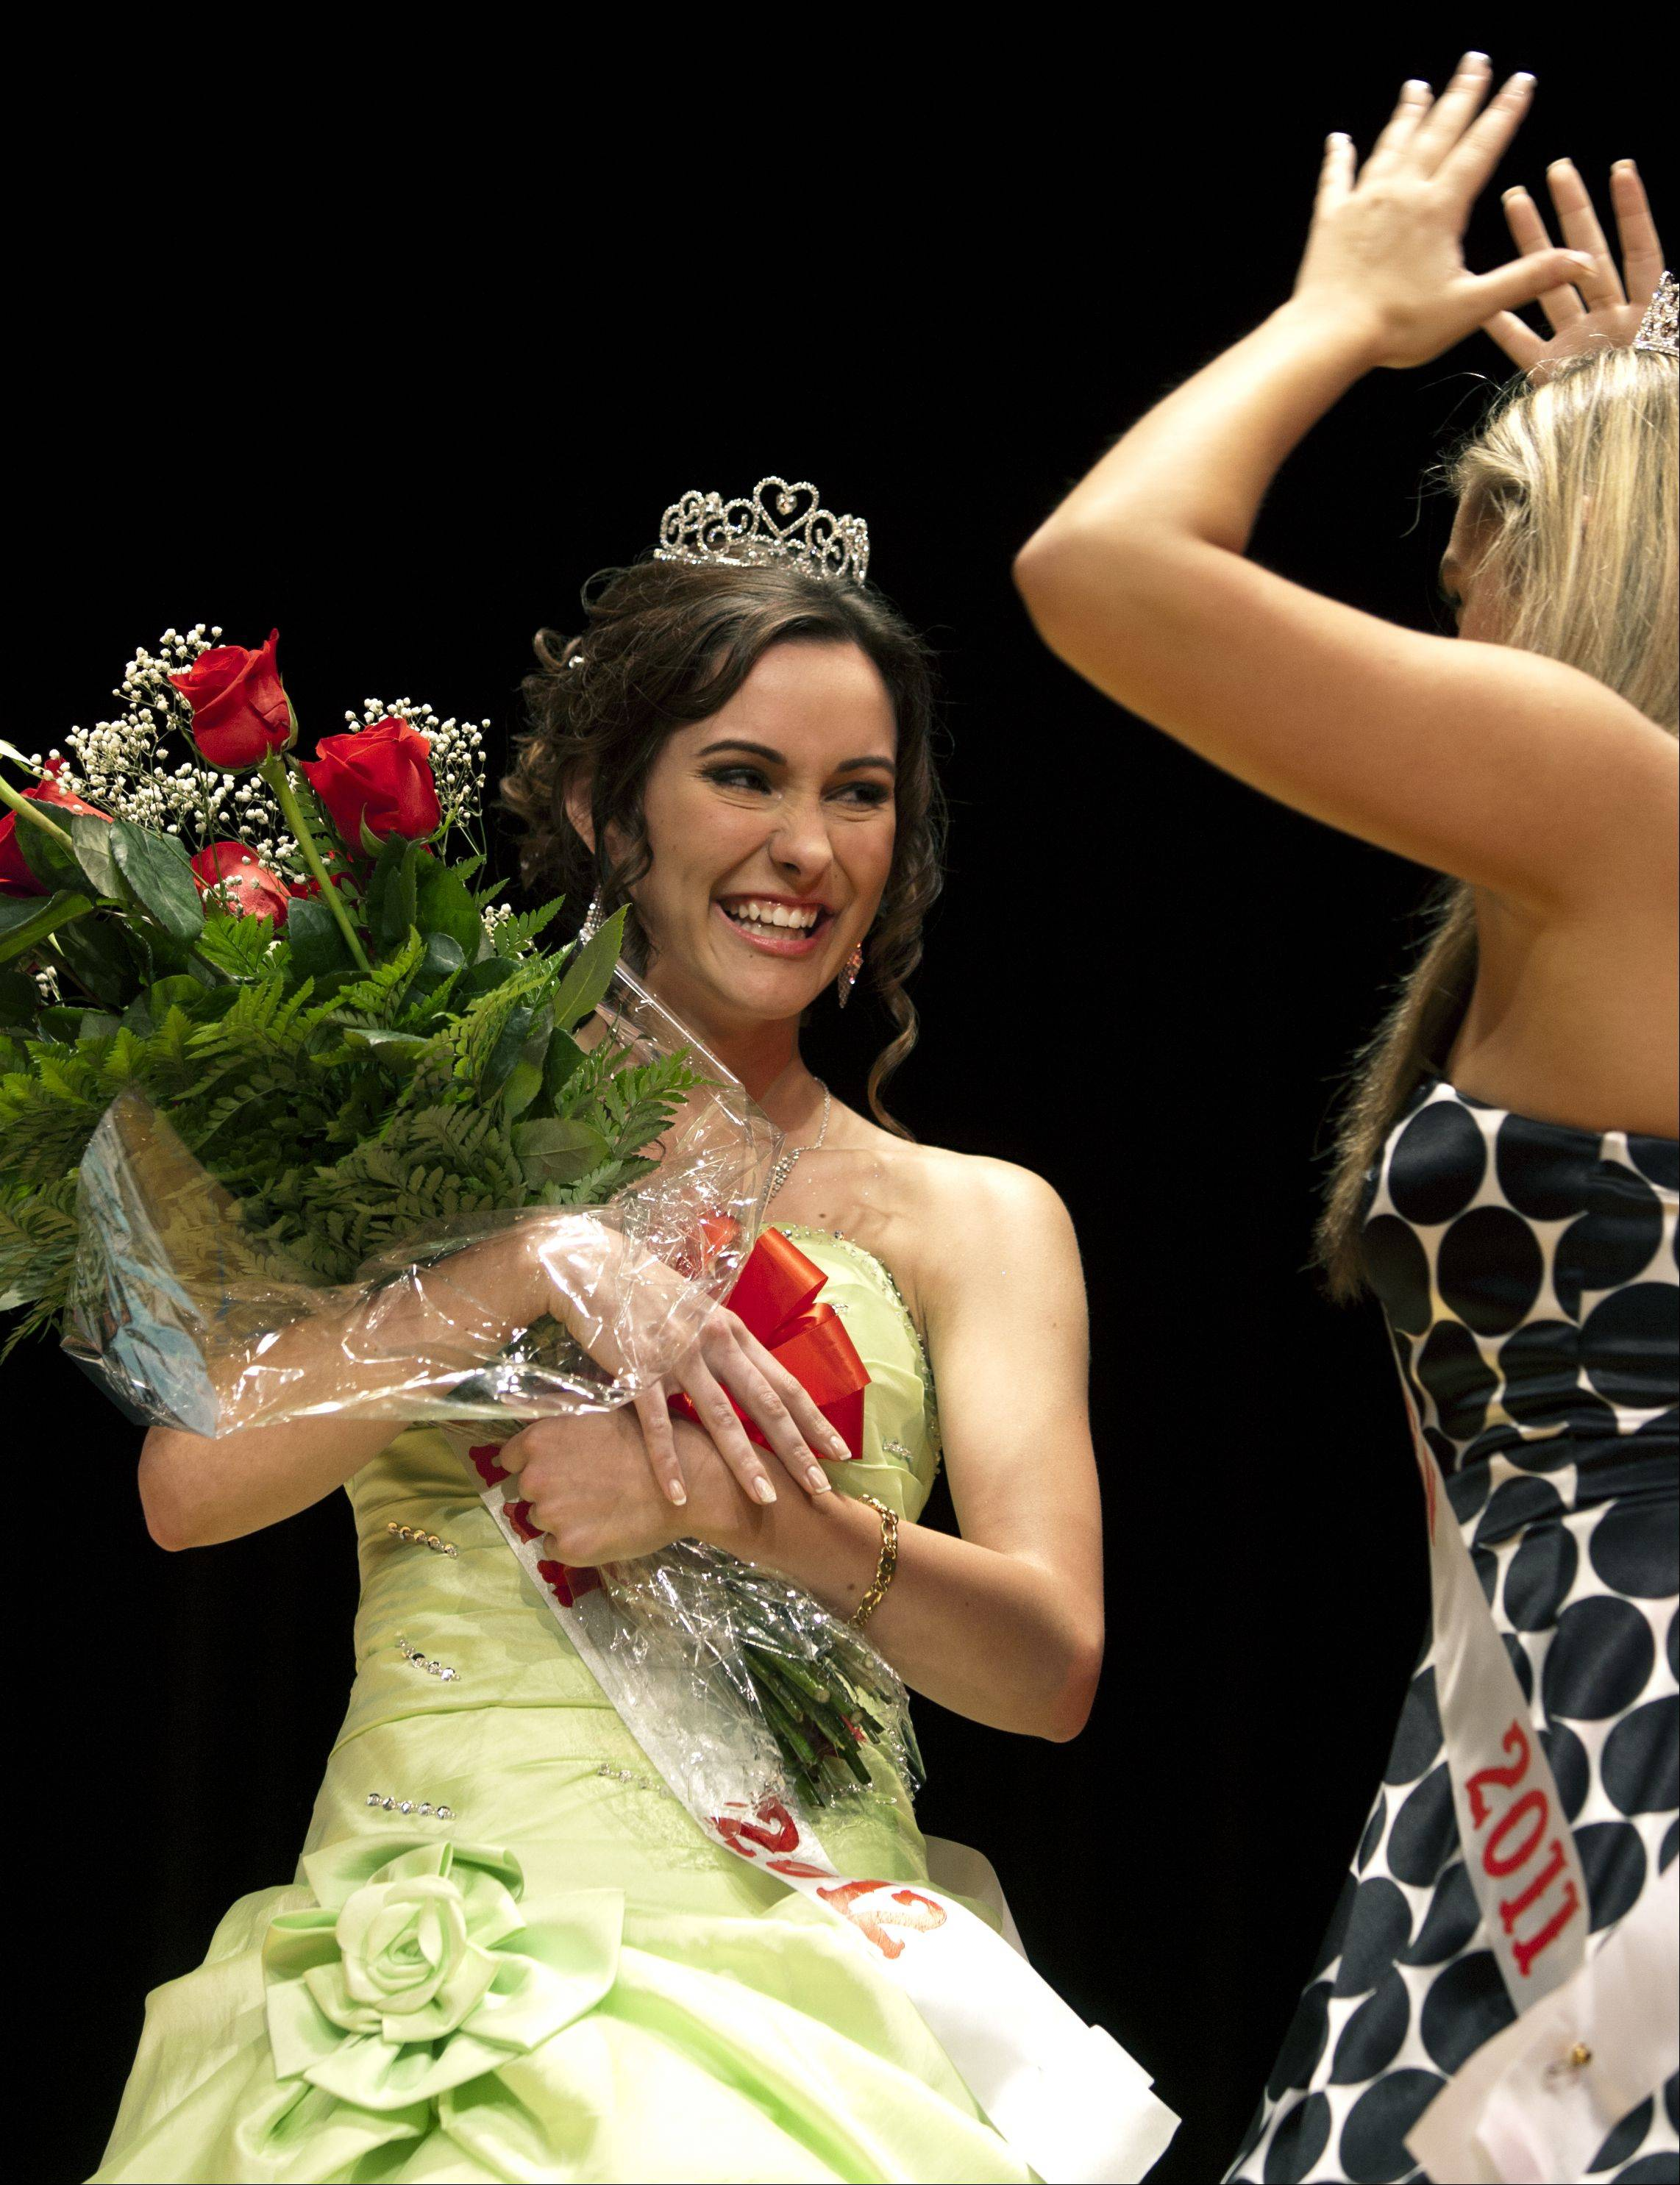 Katie Ruby is named the 53rd annual Rose Queen Pageant winner, during a competition at Lake Park High School West Campus. Lauren Caputo, right, 2011 Rose Queen, crowns the new winner.